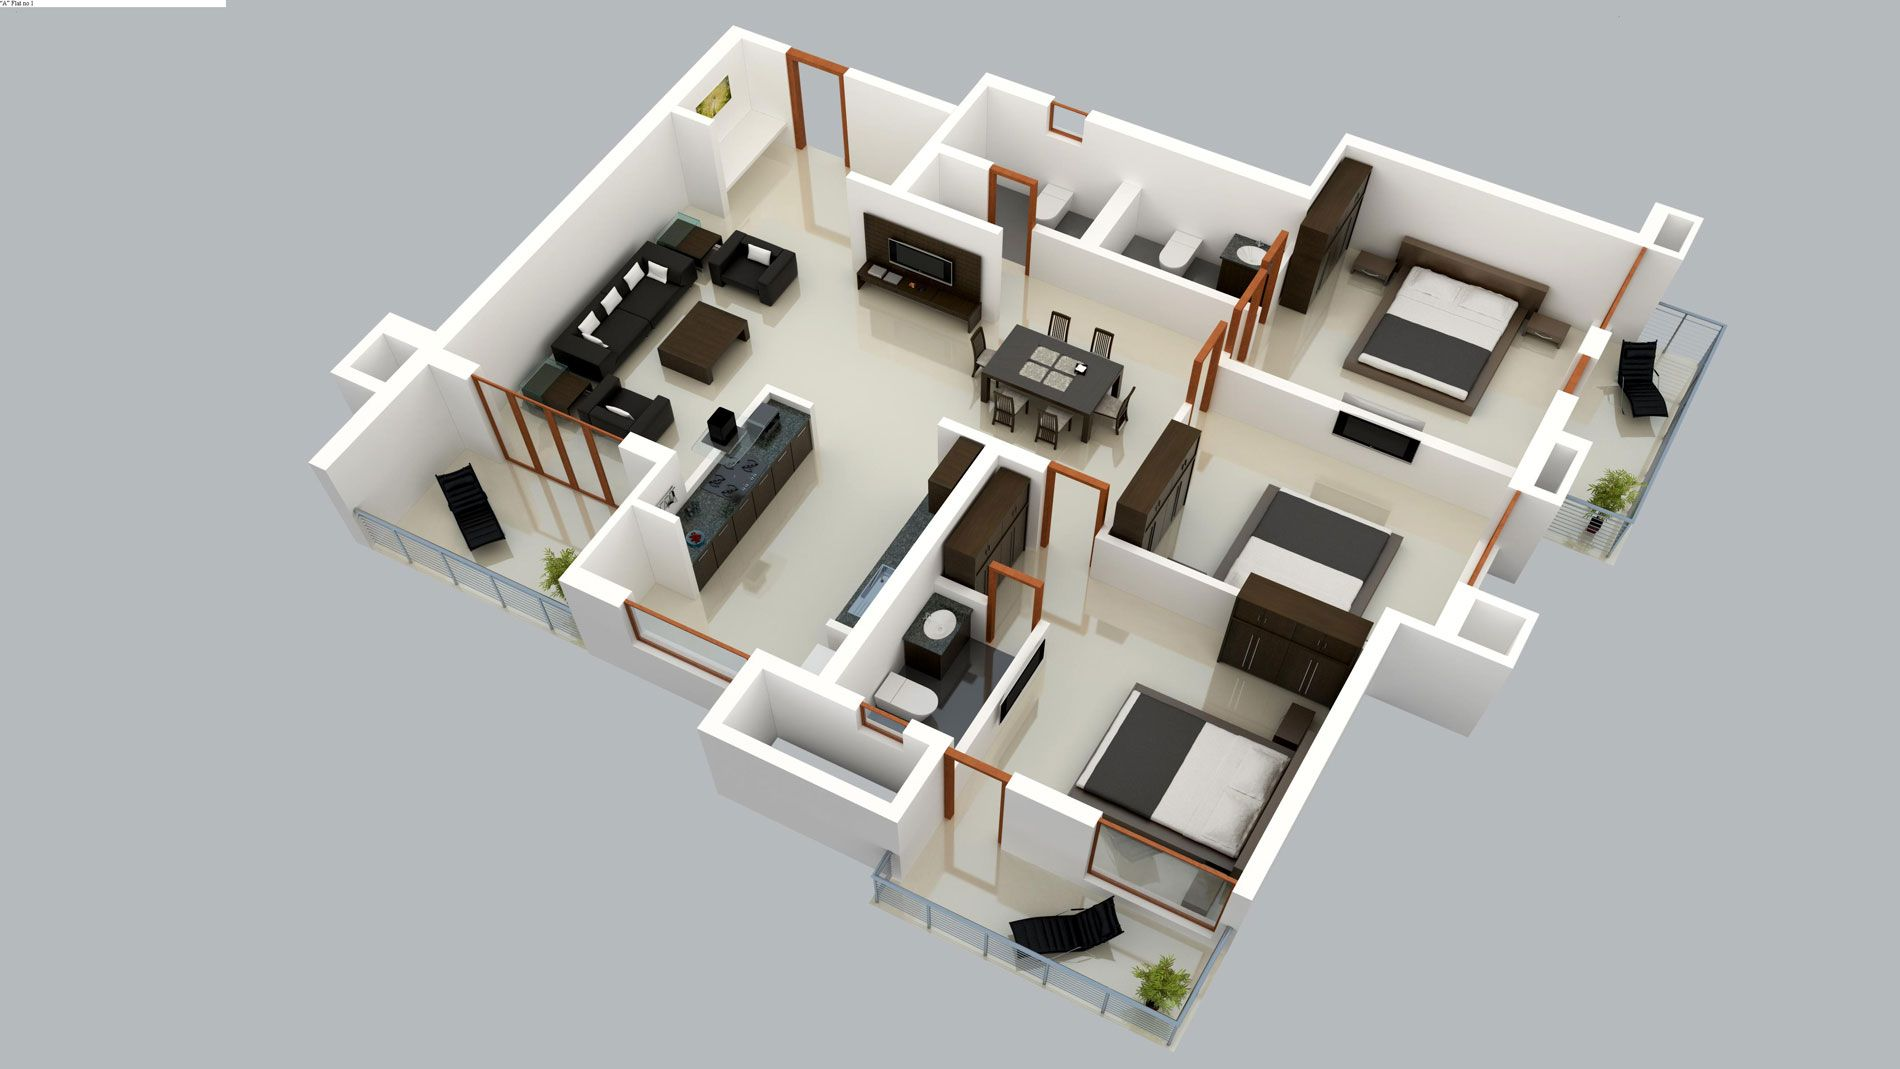 If You Want You Can Also Try To Design House Plans Online If You Want To Make A House On Your Own You Will Be Able To Get Some Benefits By Designing